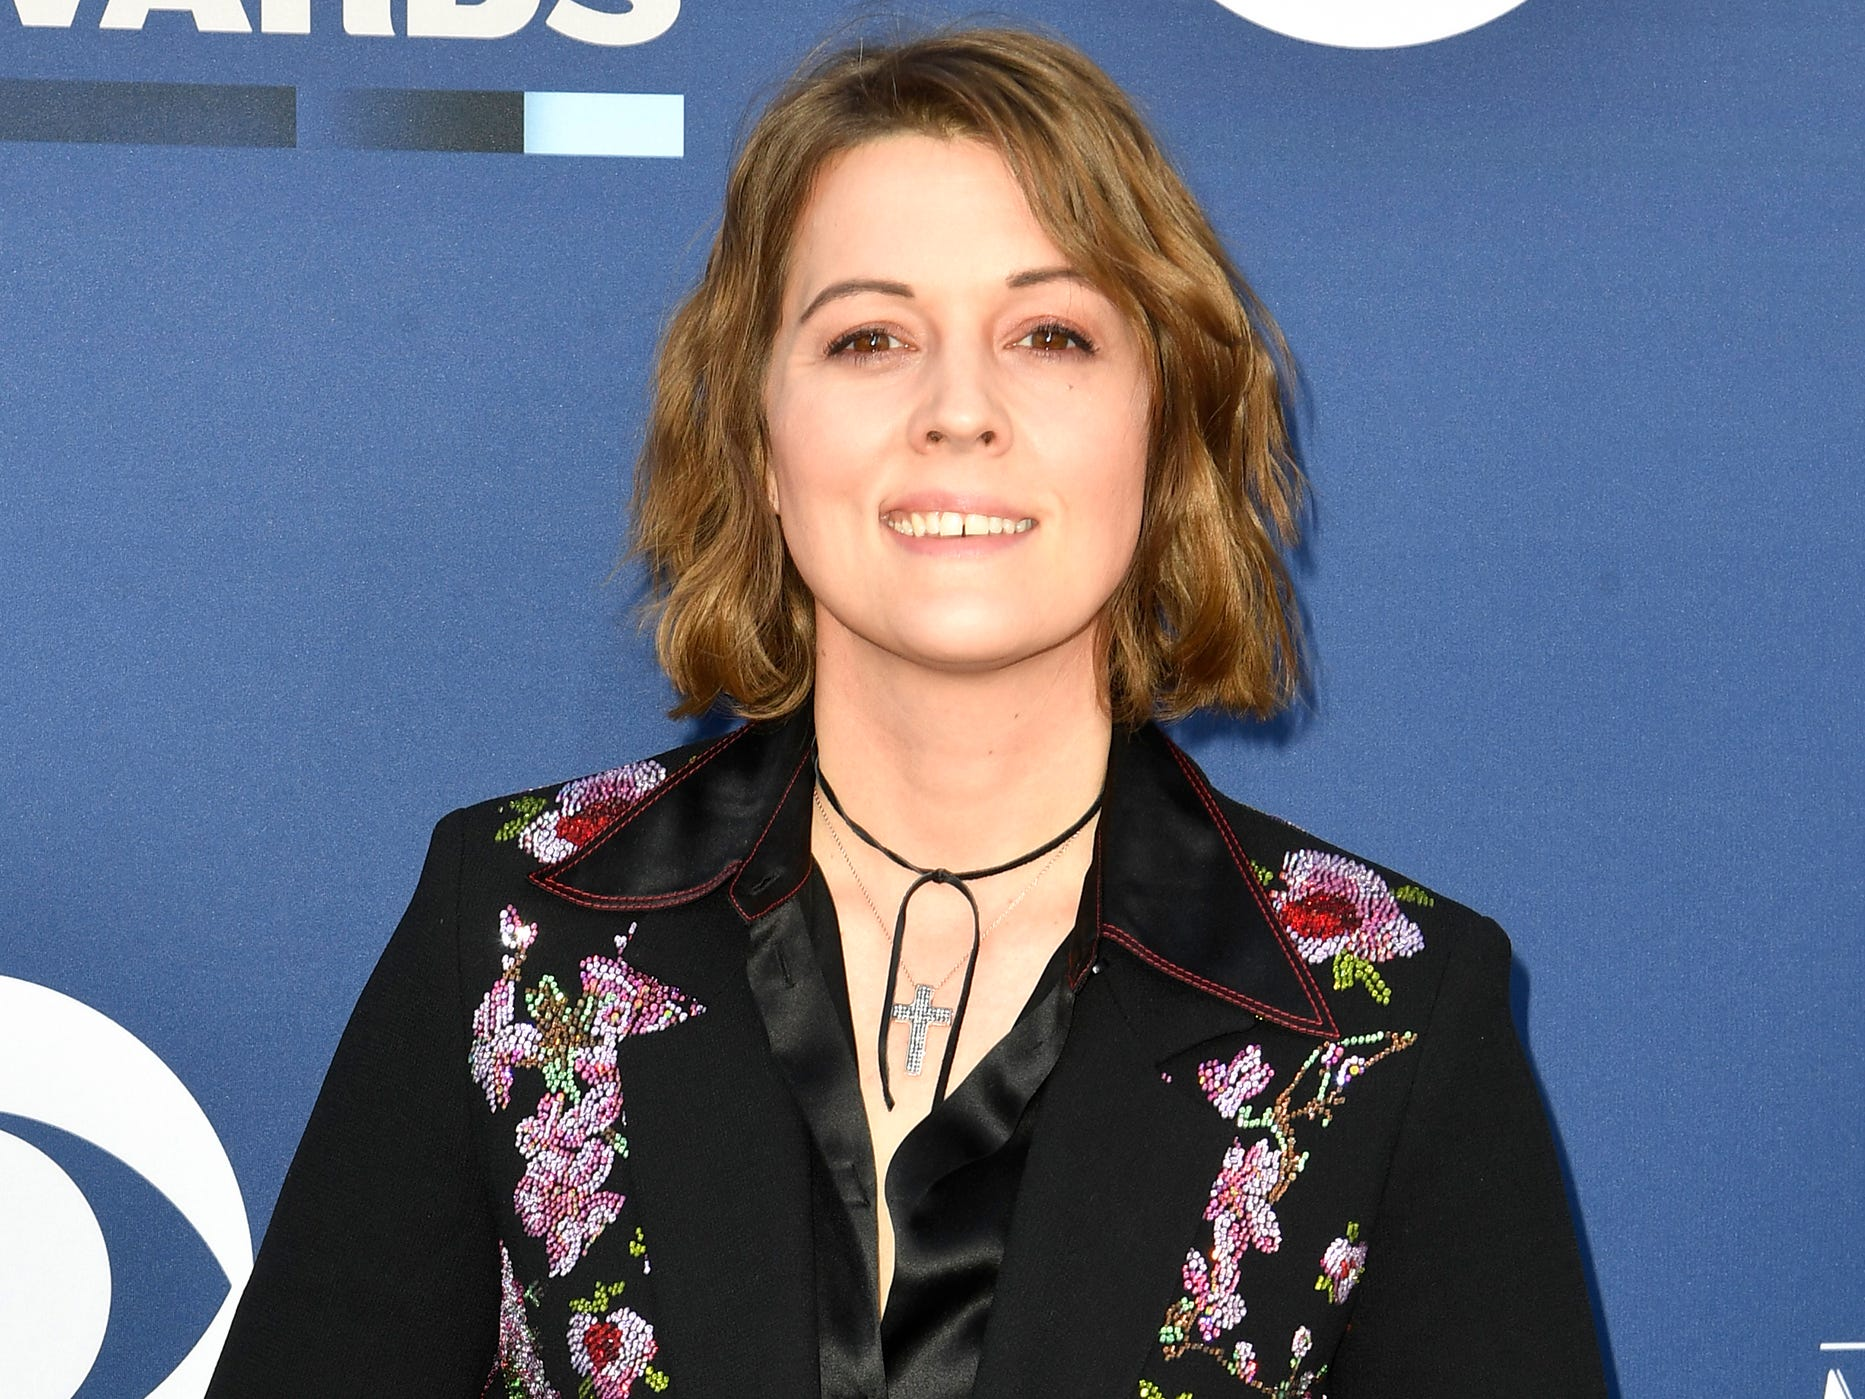 Brandi Carlile walks the red carpet at the 54TH Academy of Country Music Awards Sunday, April 7, 2019, in Las Vegas, Nev.